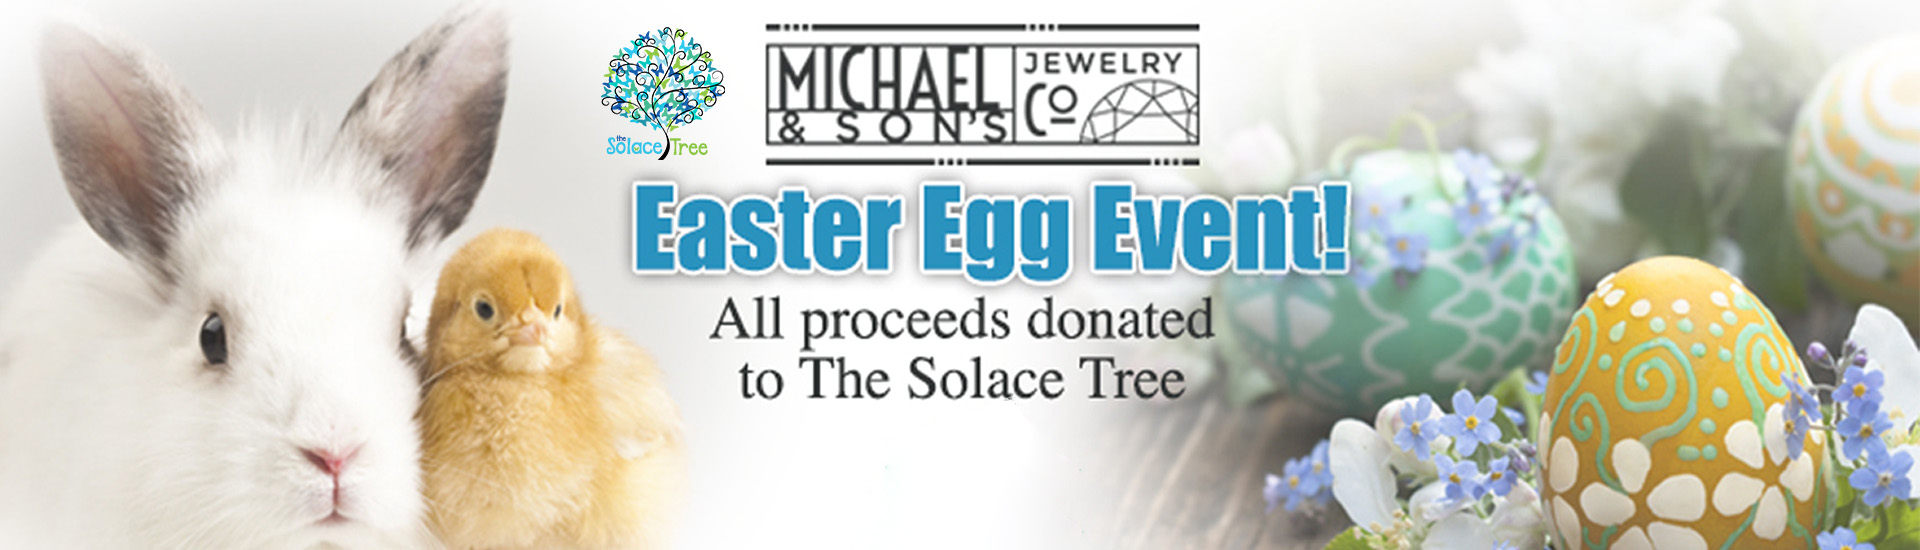 2019 Easter Egg Event - Michael and Sons